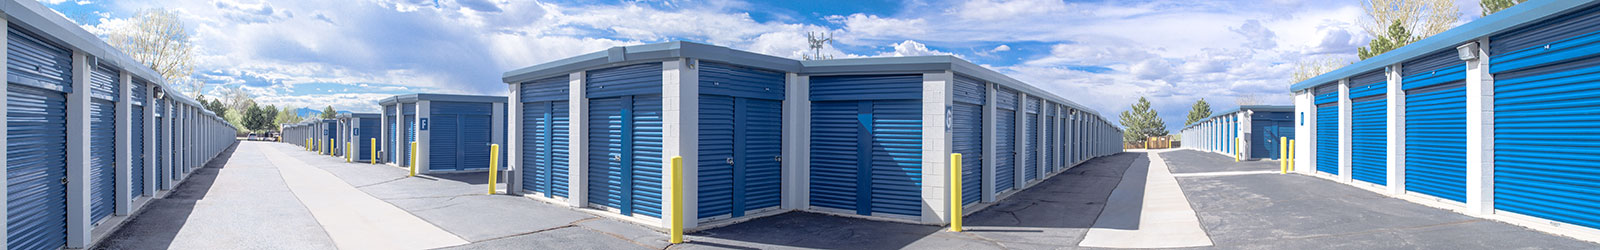 Security Self Storage management